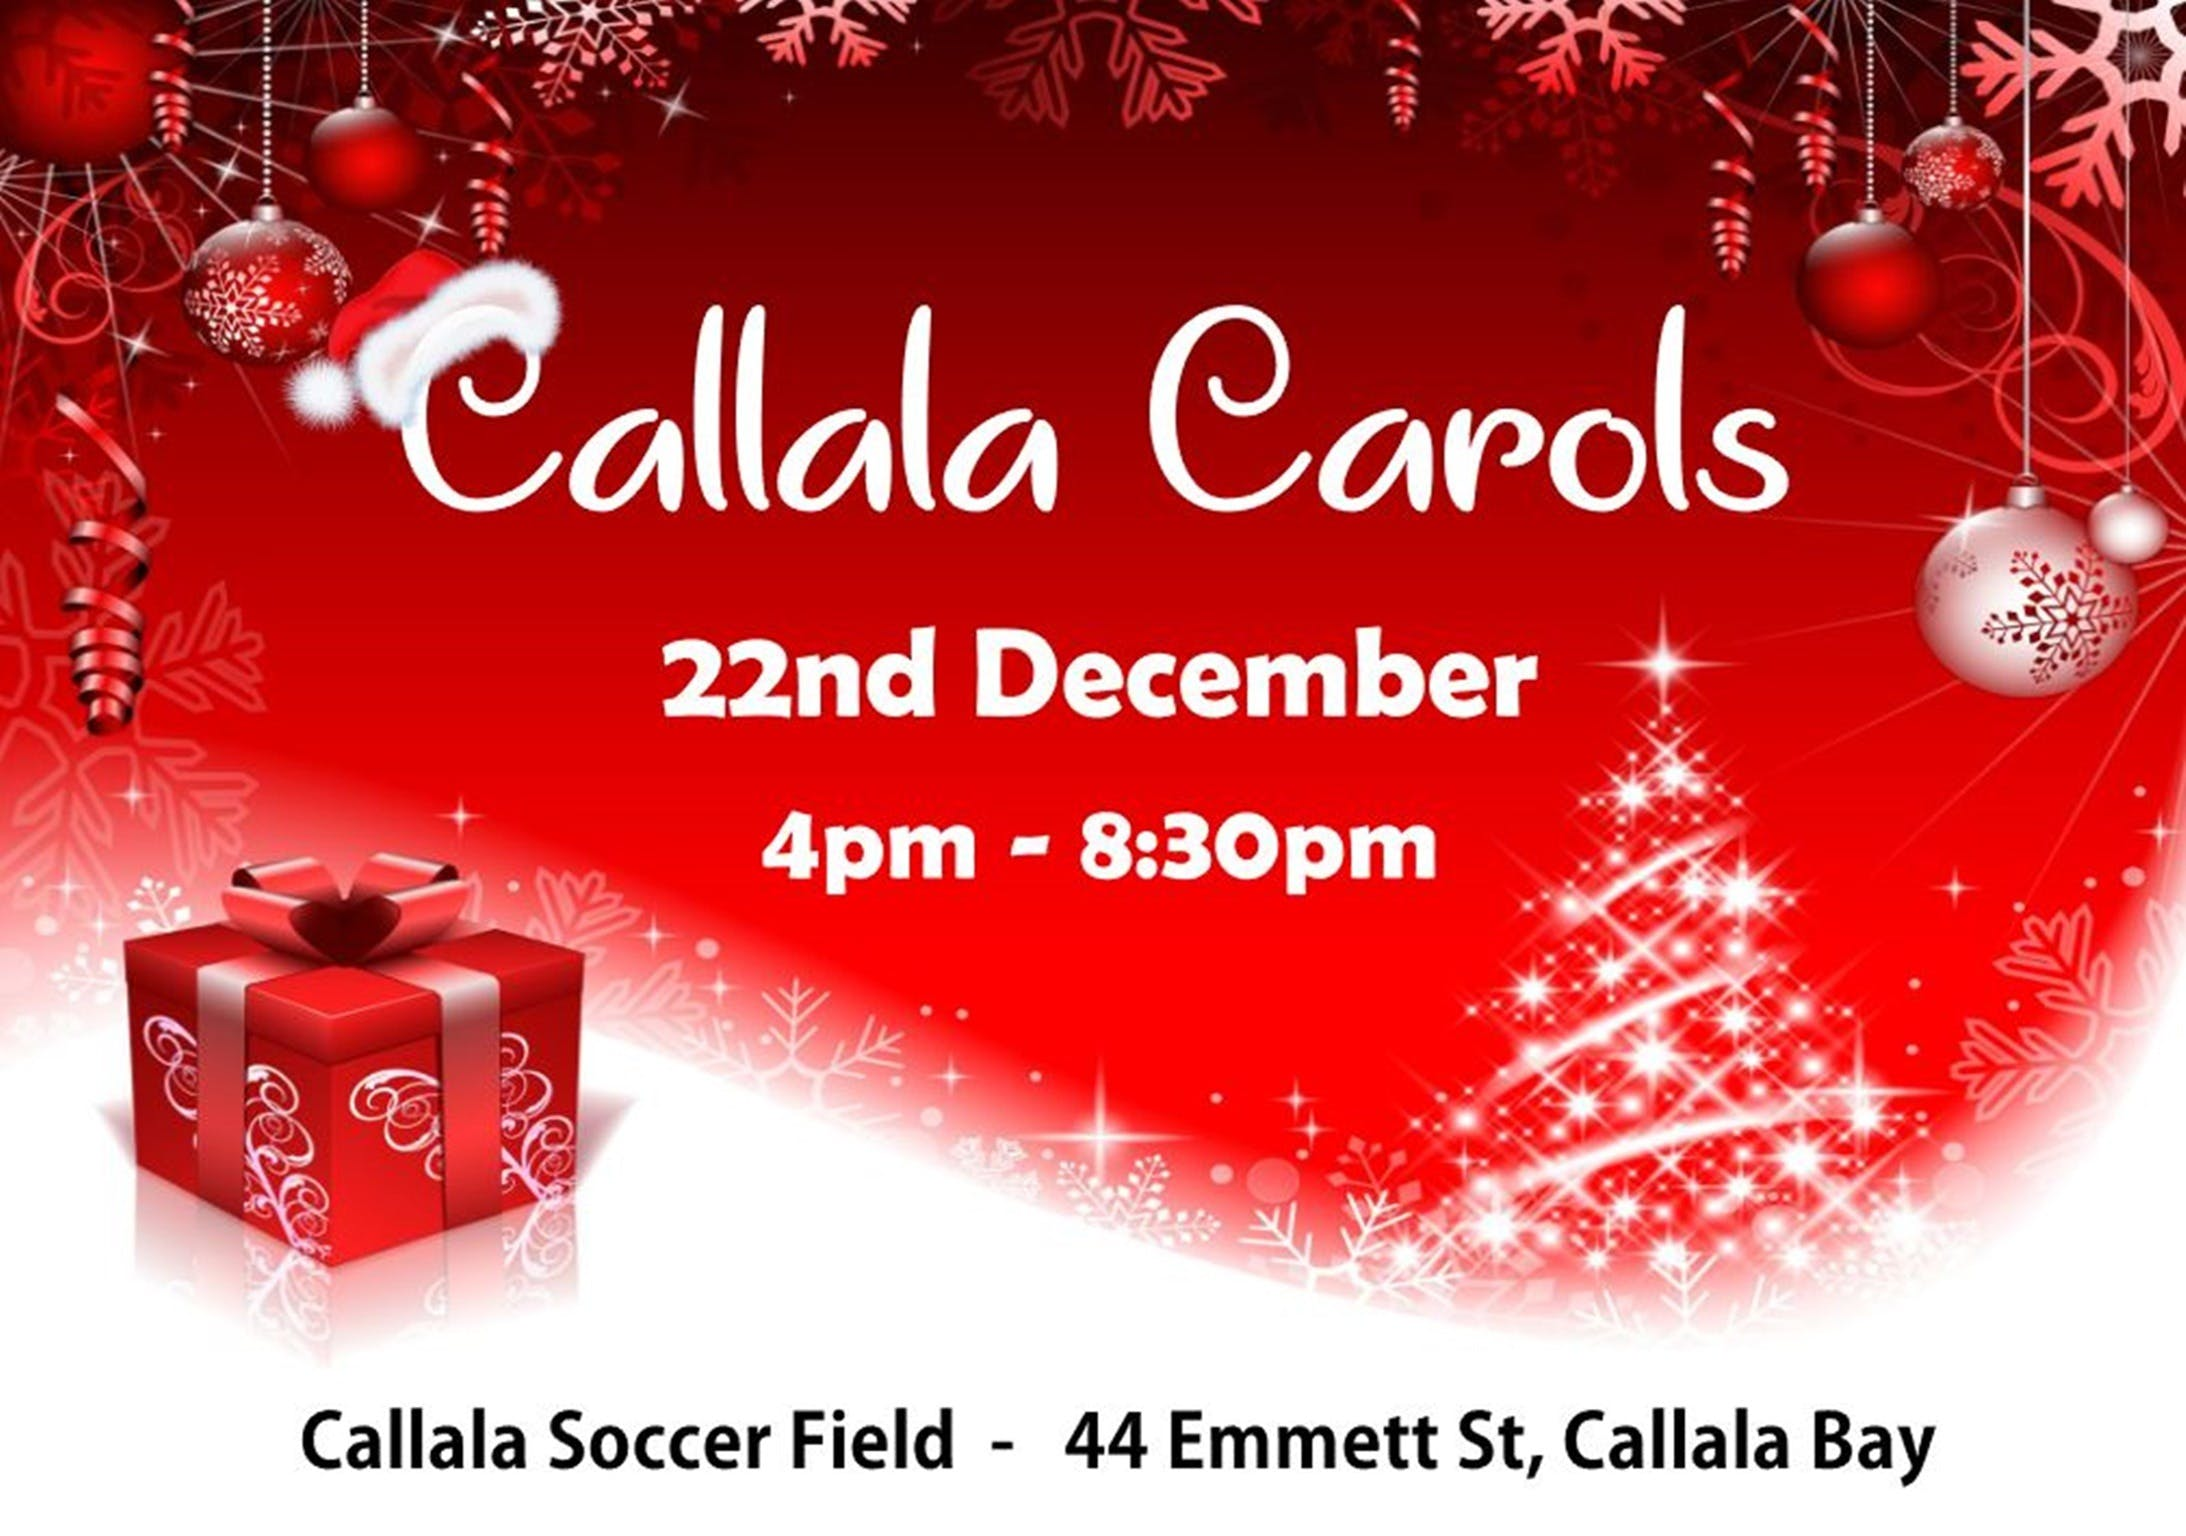 Callala Carols - eAccommodation